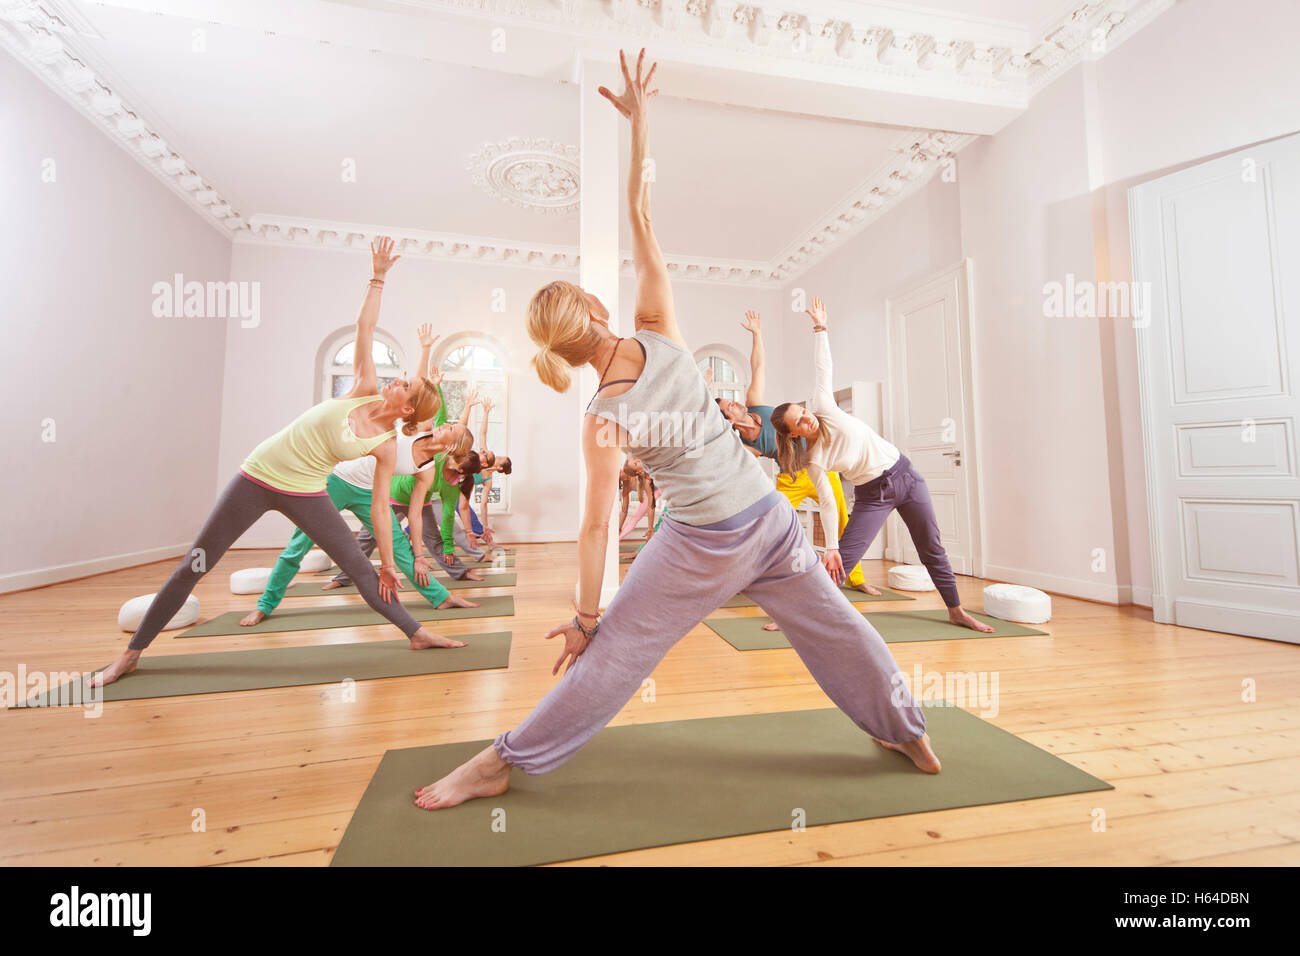 Group of people in yoga studio holding the extended triangle pose - Stock Image